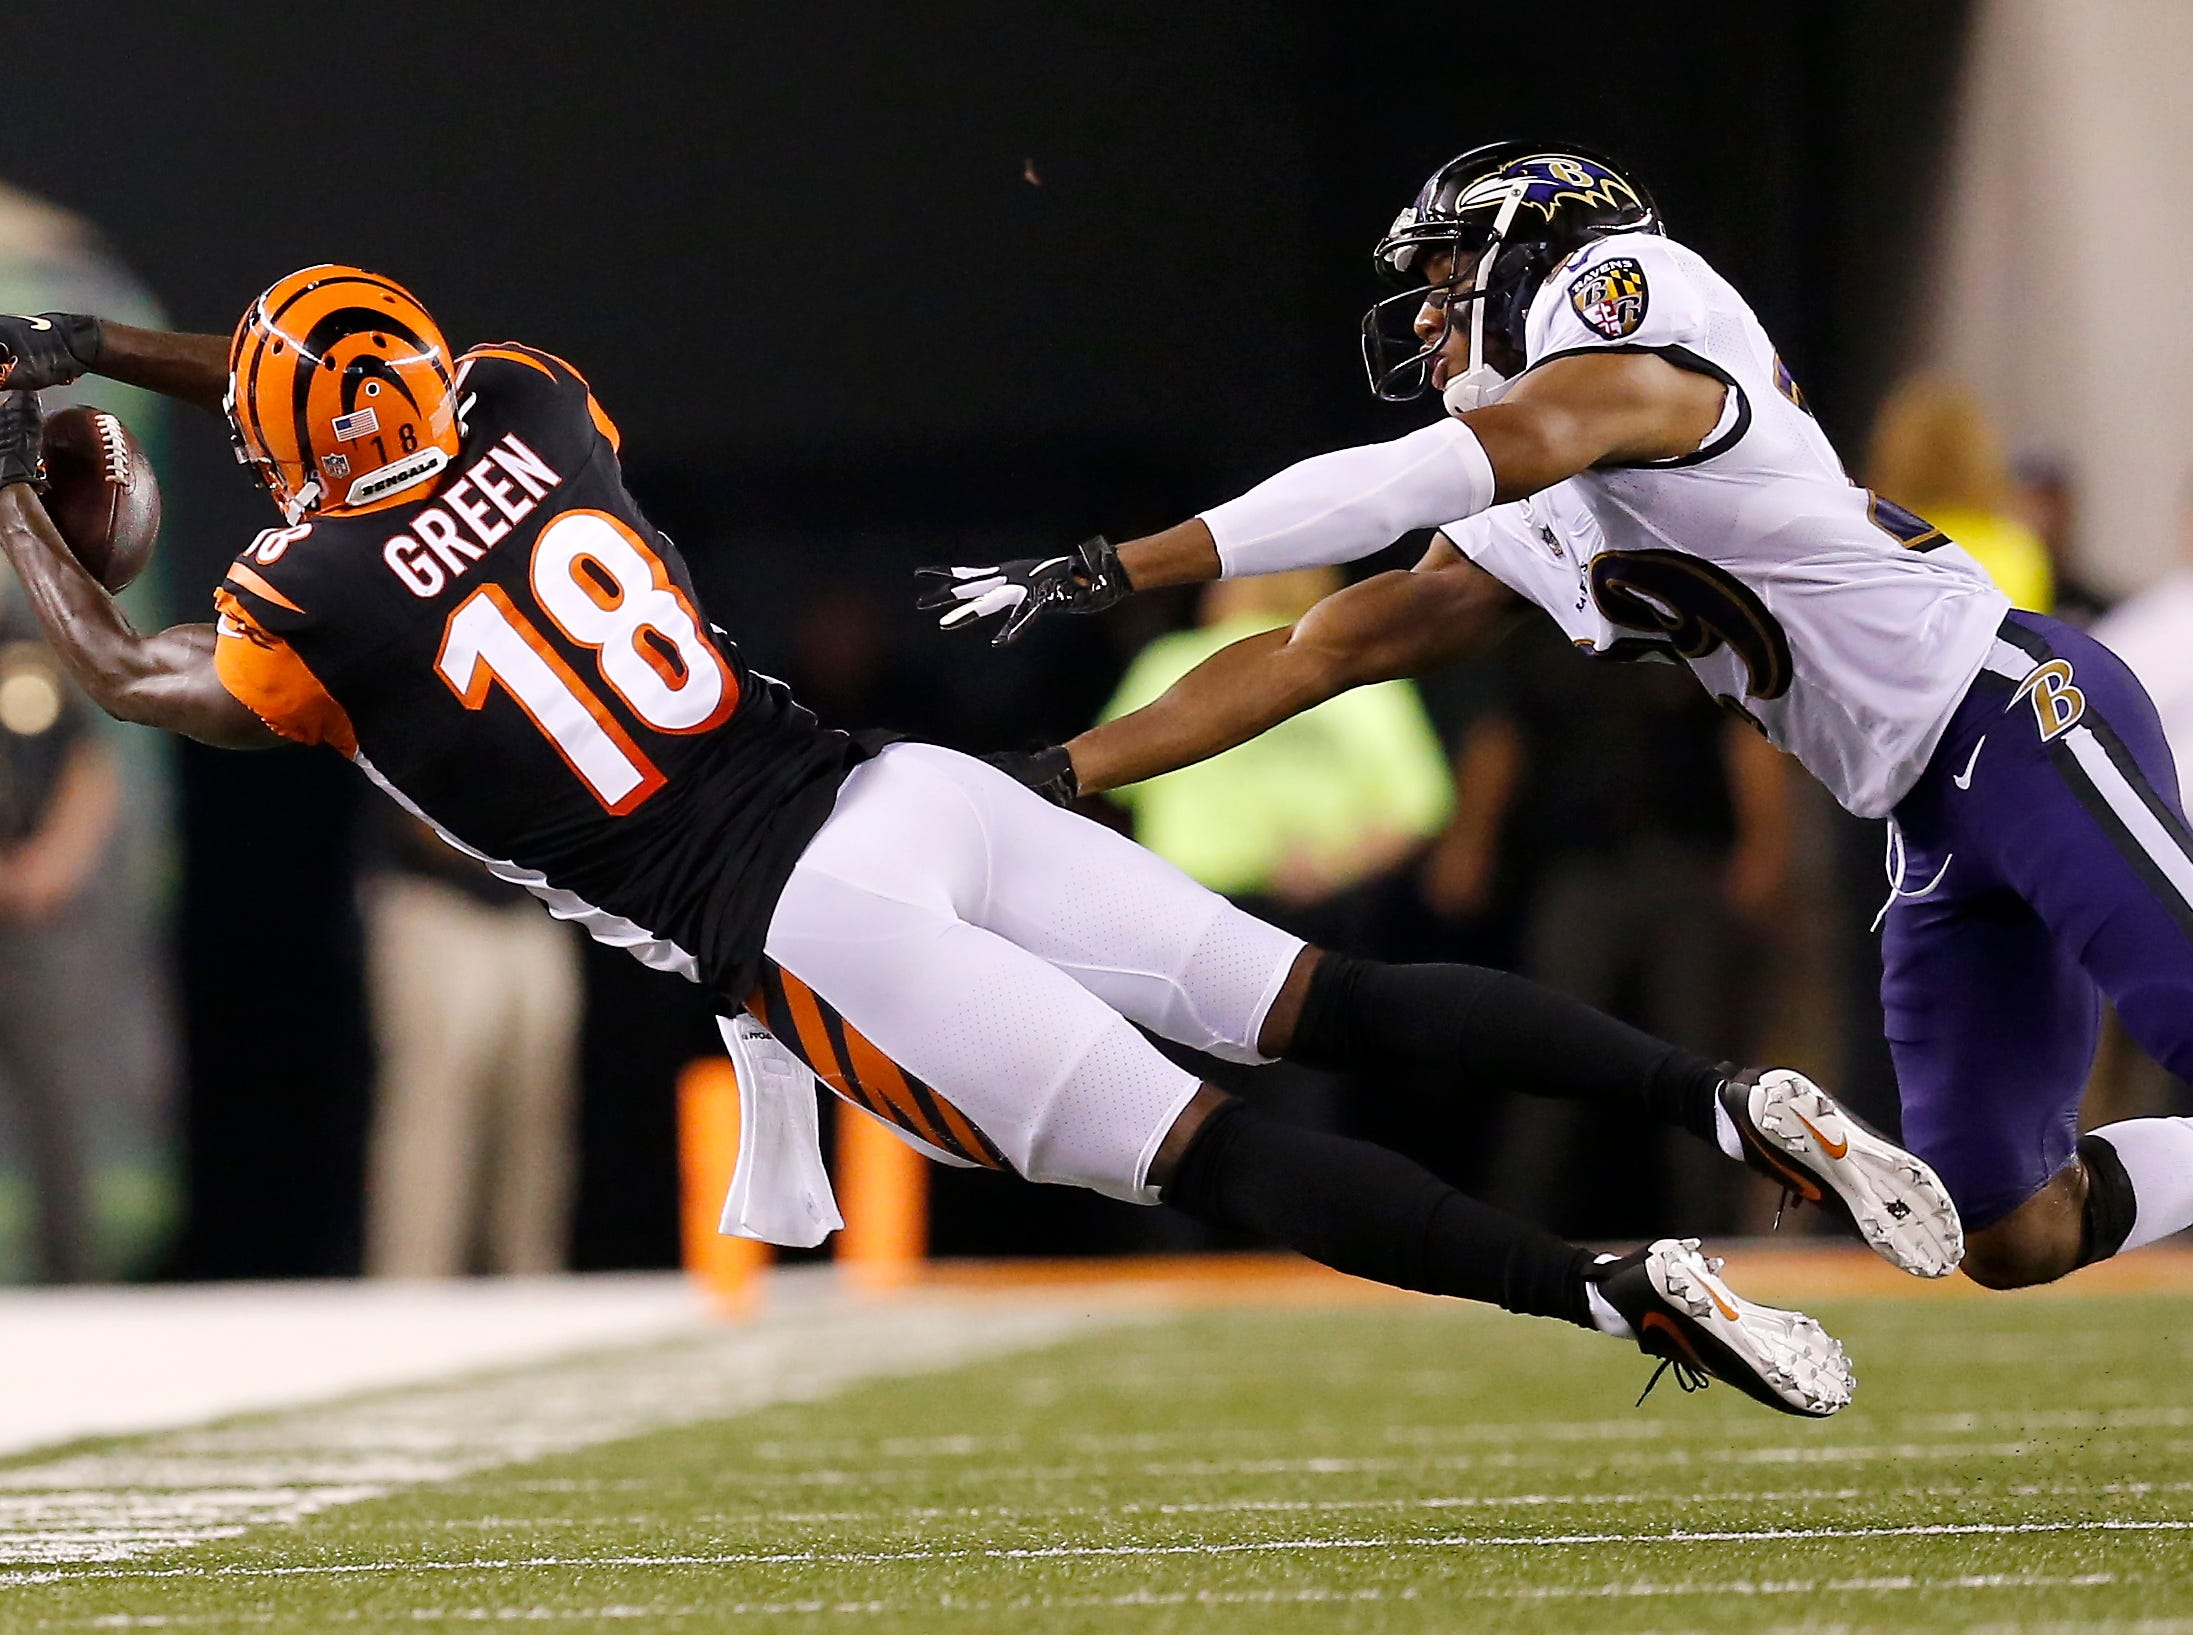 Cincinnati Bengals wide receiver A.J. Green (18) stretches for a pass but lands incomplete in the second quarter of the NFL Week 2 game between the Cincinnati Bengals and the Baltimore Ravens at Paul Brown Stadium in downtown Cincinnati on Thursday, Sept. 13, 2018. The Bengals led 28-14 at halftime.